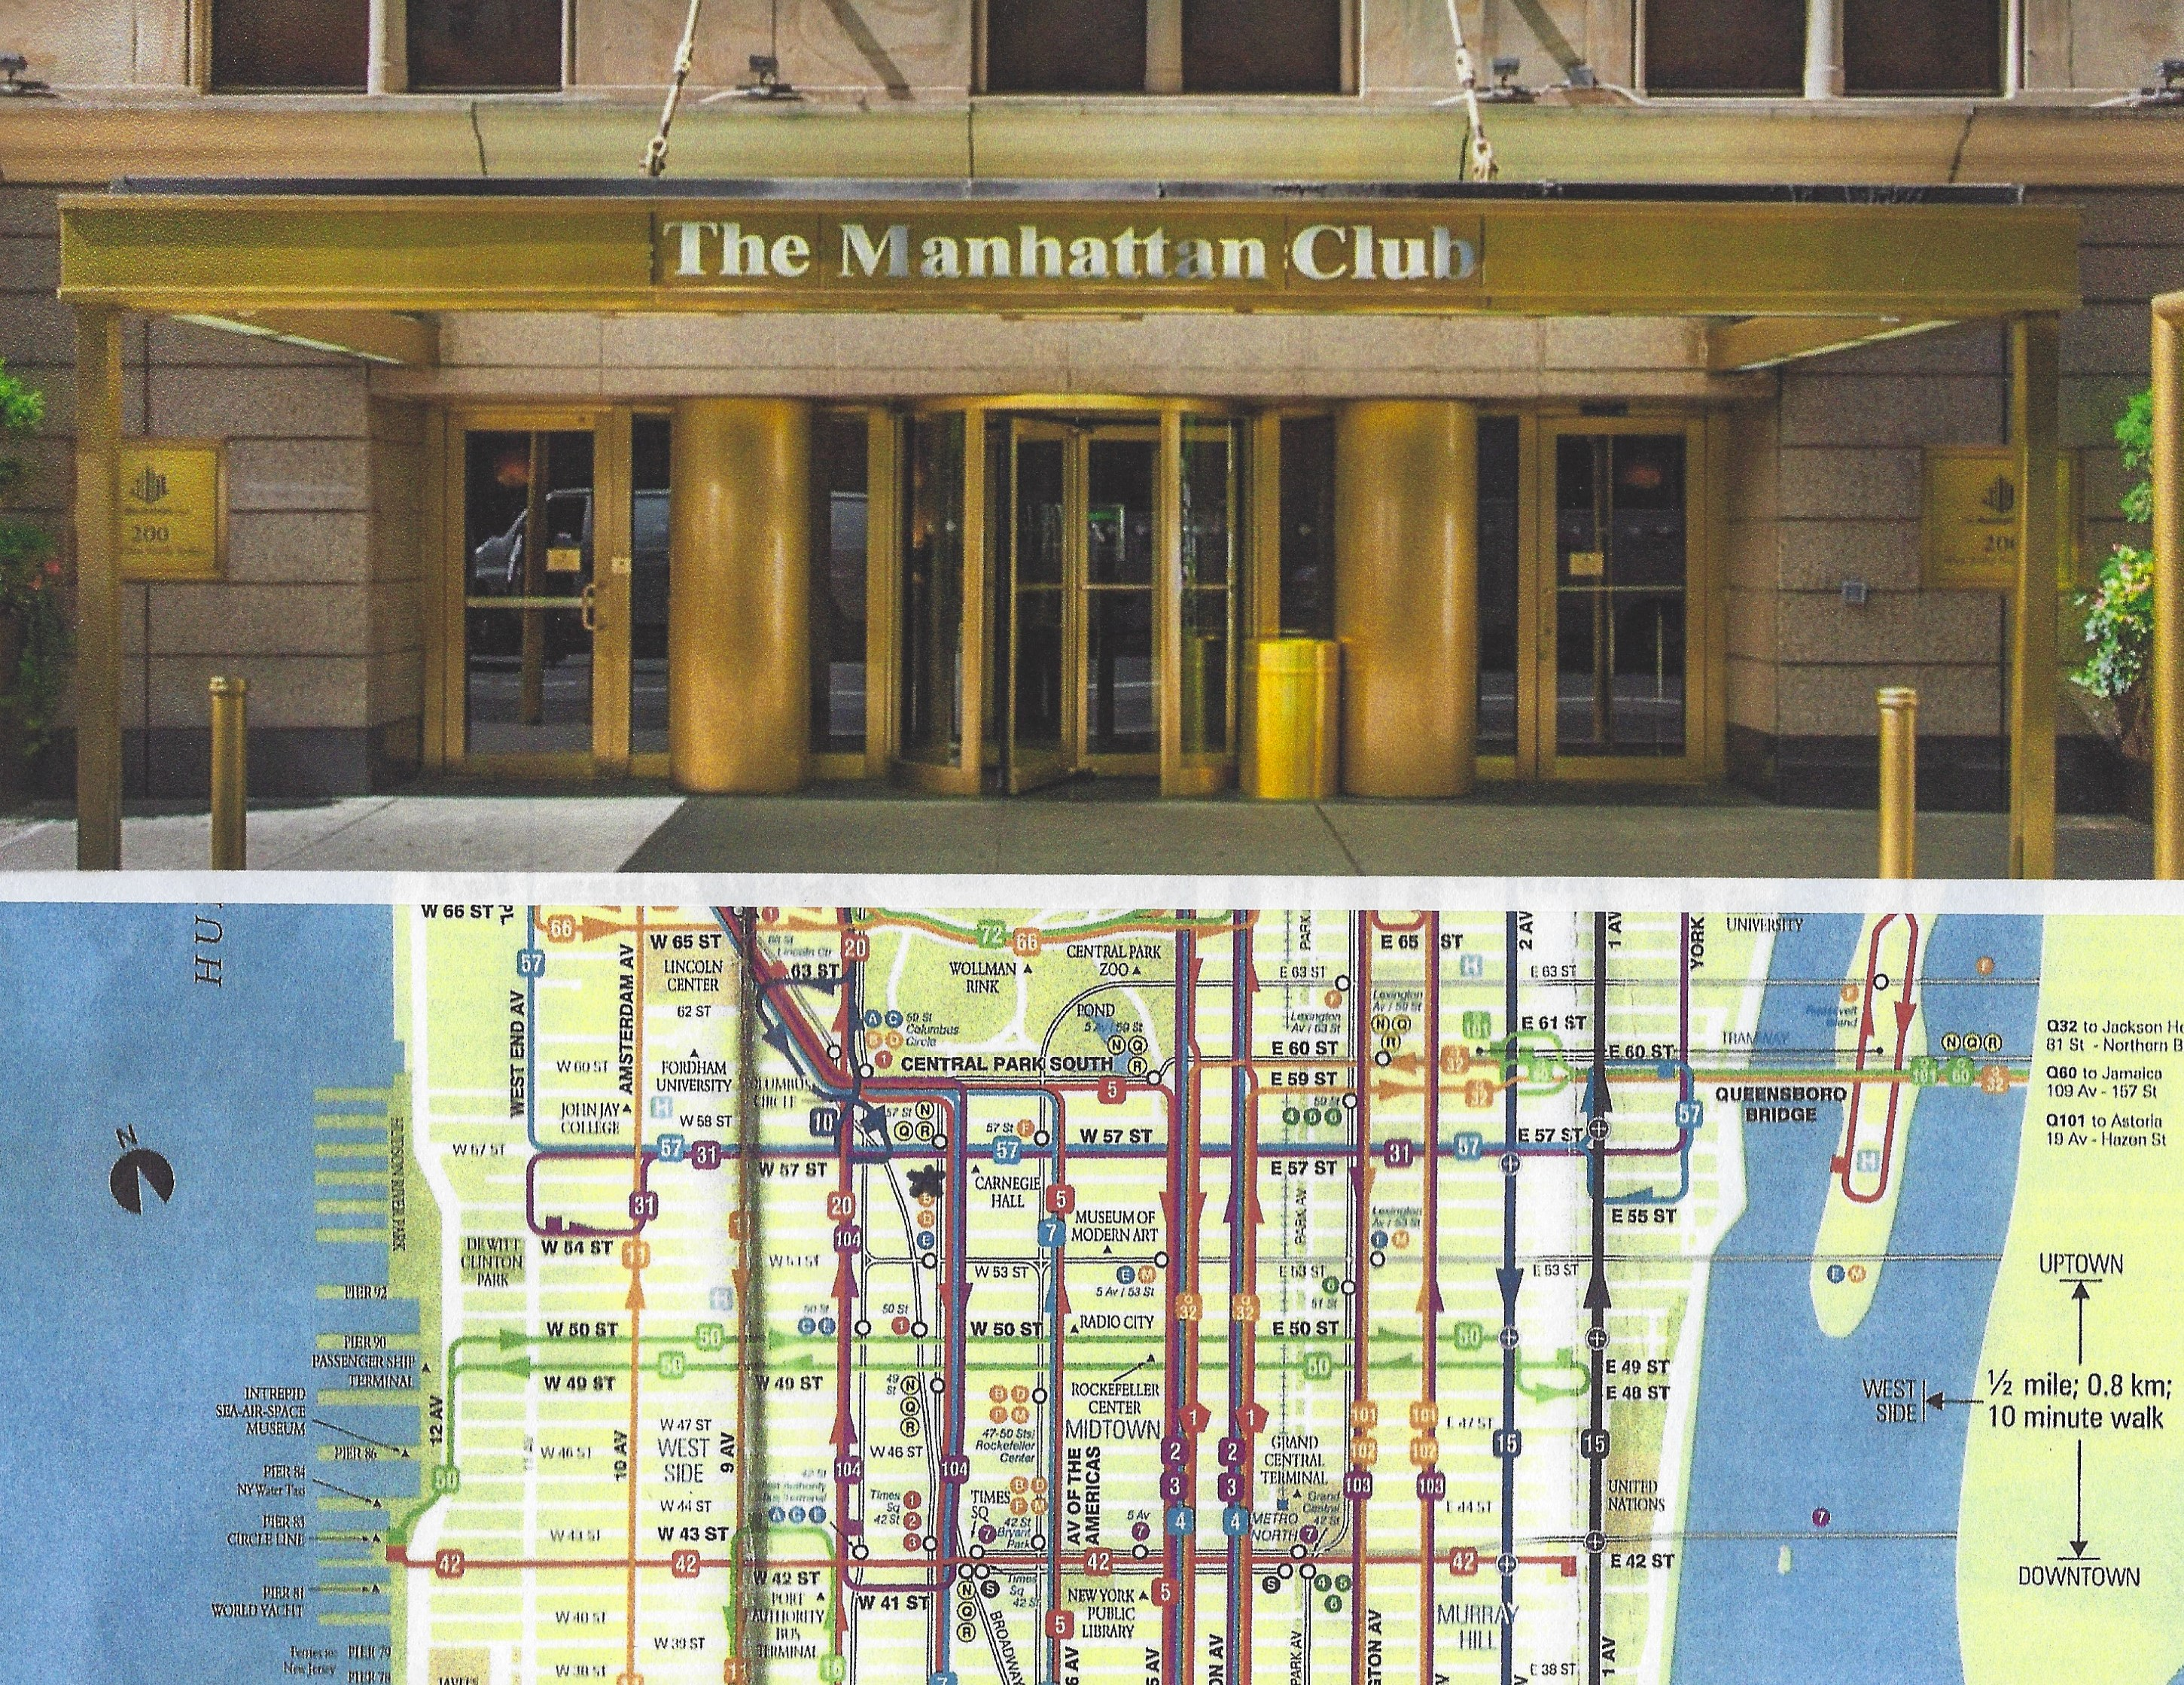 The Manhattan Club image